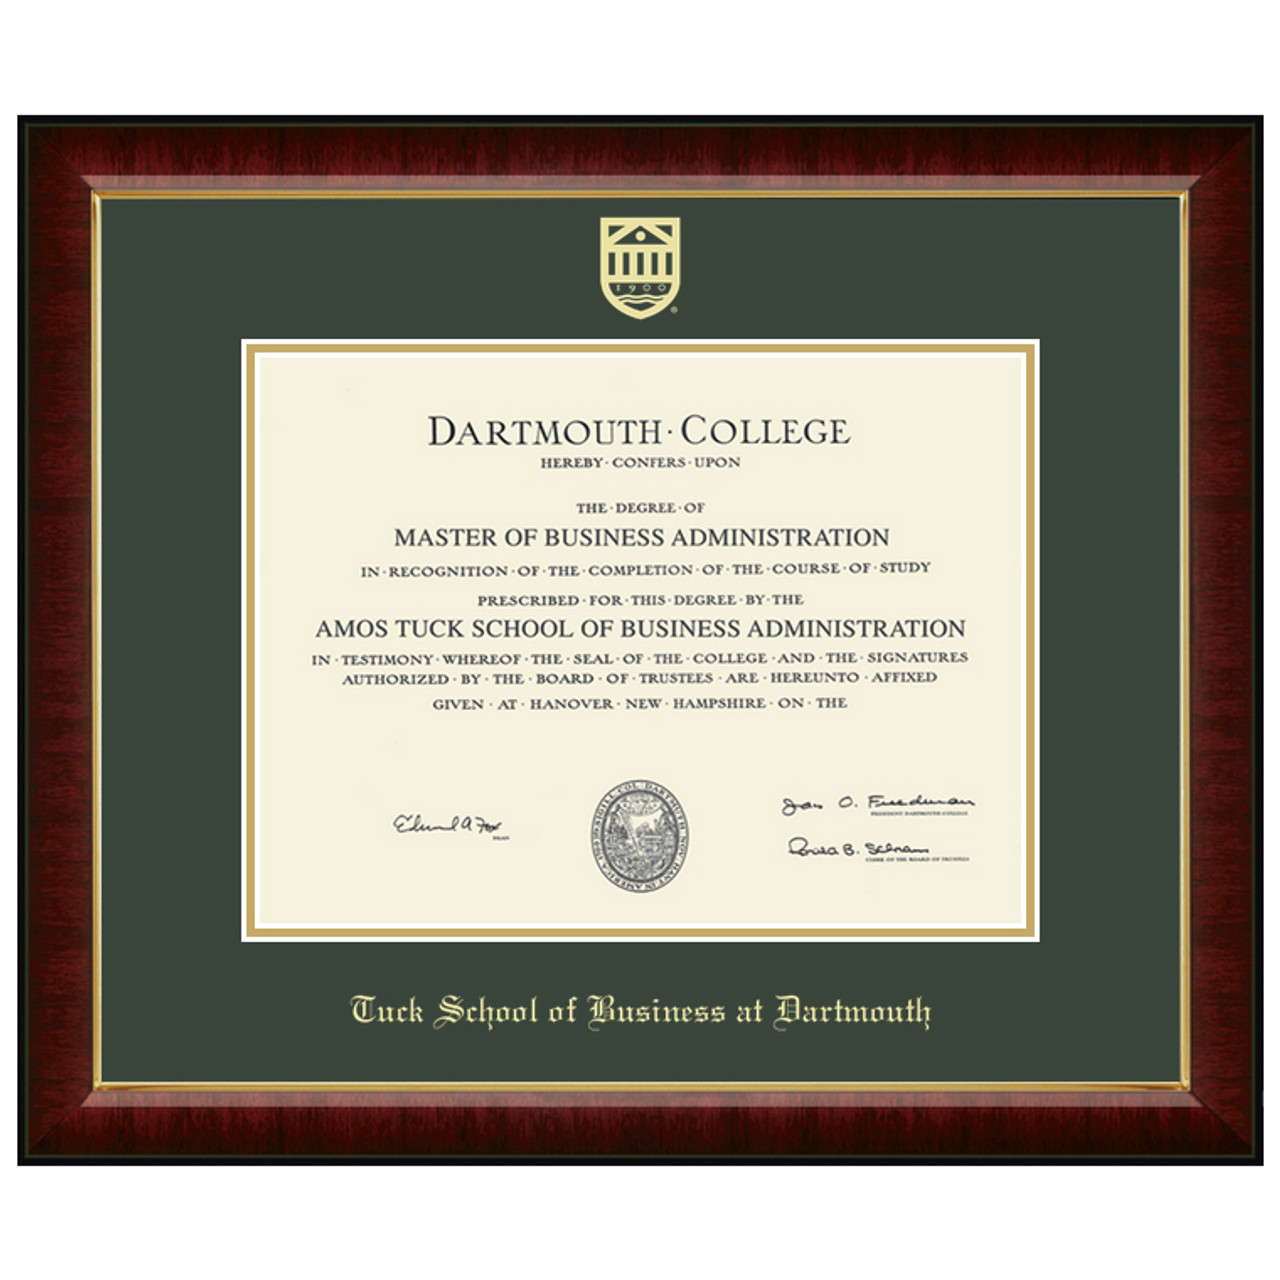 Murano Diploma Frame - Tuck School of Business at Dartmouth